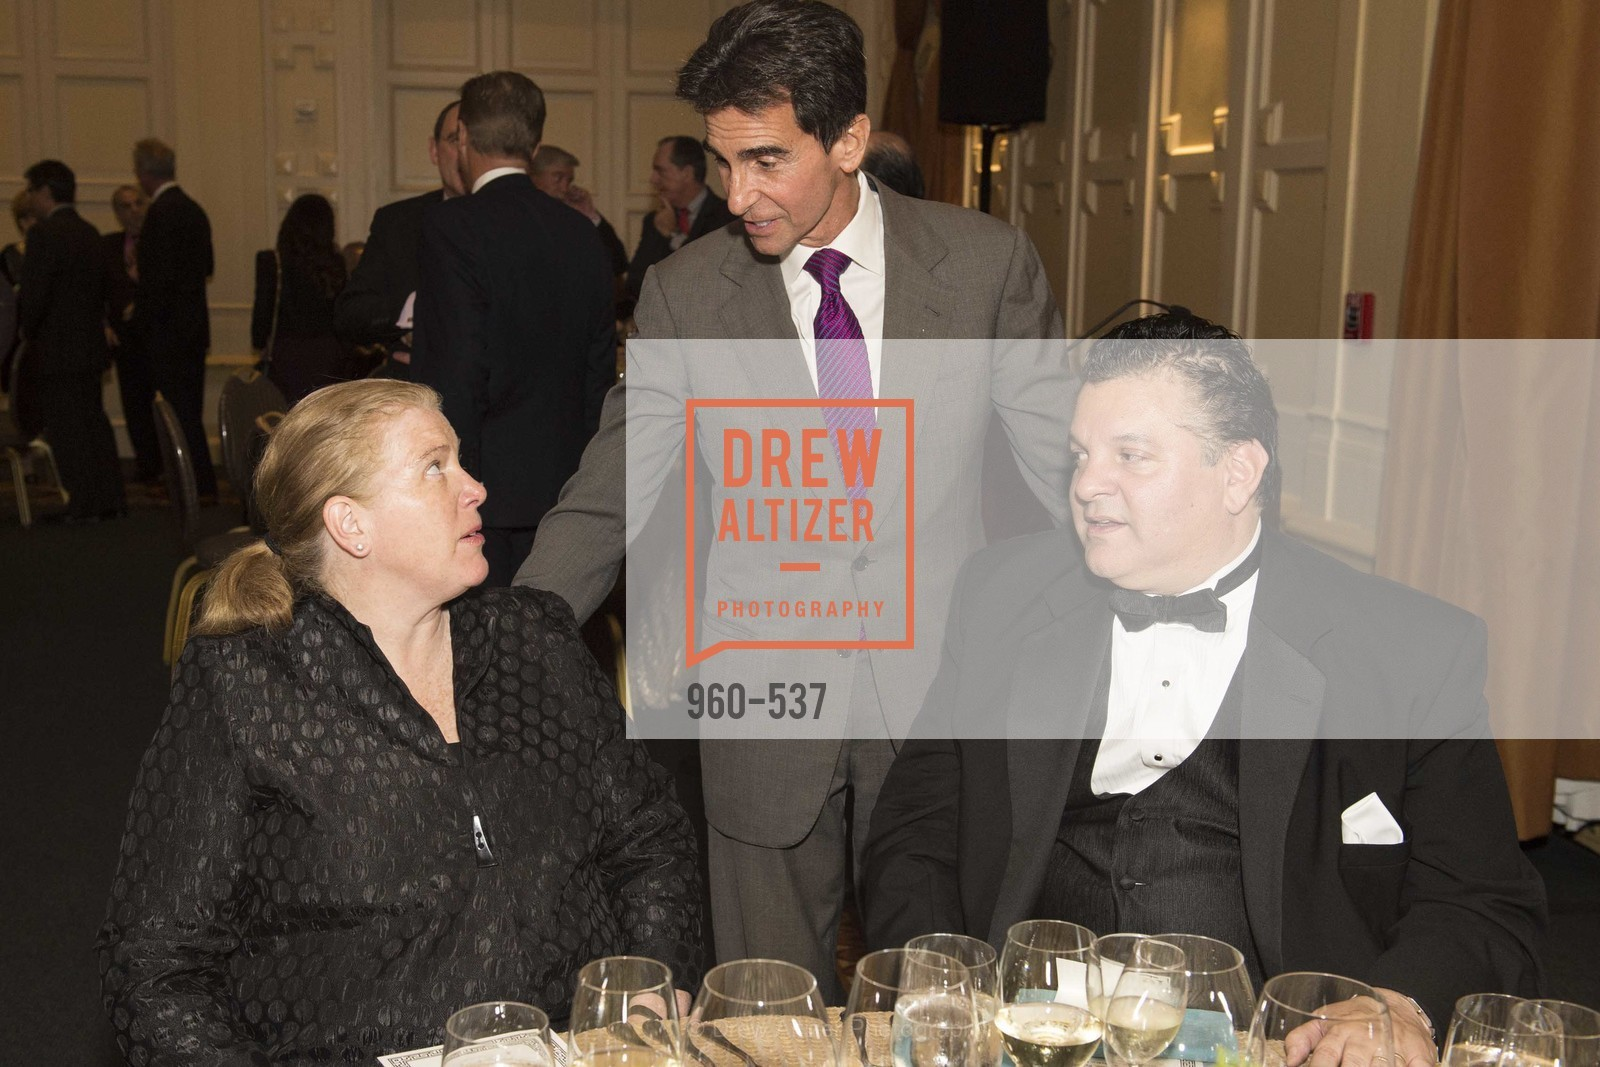 Joanne Hayes-White, Mark Leno, John Konstin, TOP OF THE MARK'S 75TH Anniversary Party, US, November 6th, 2014,Drew Altizer, Drew Altizer Photography, full-service agency, private events, San Francisco photographer, photographer california